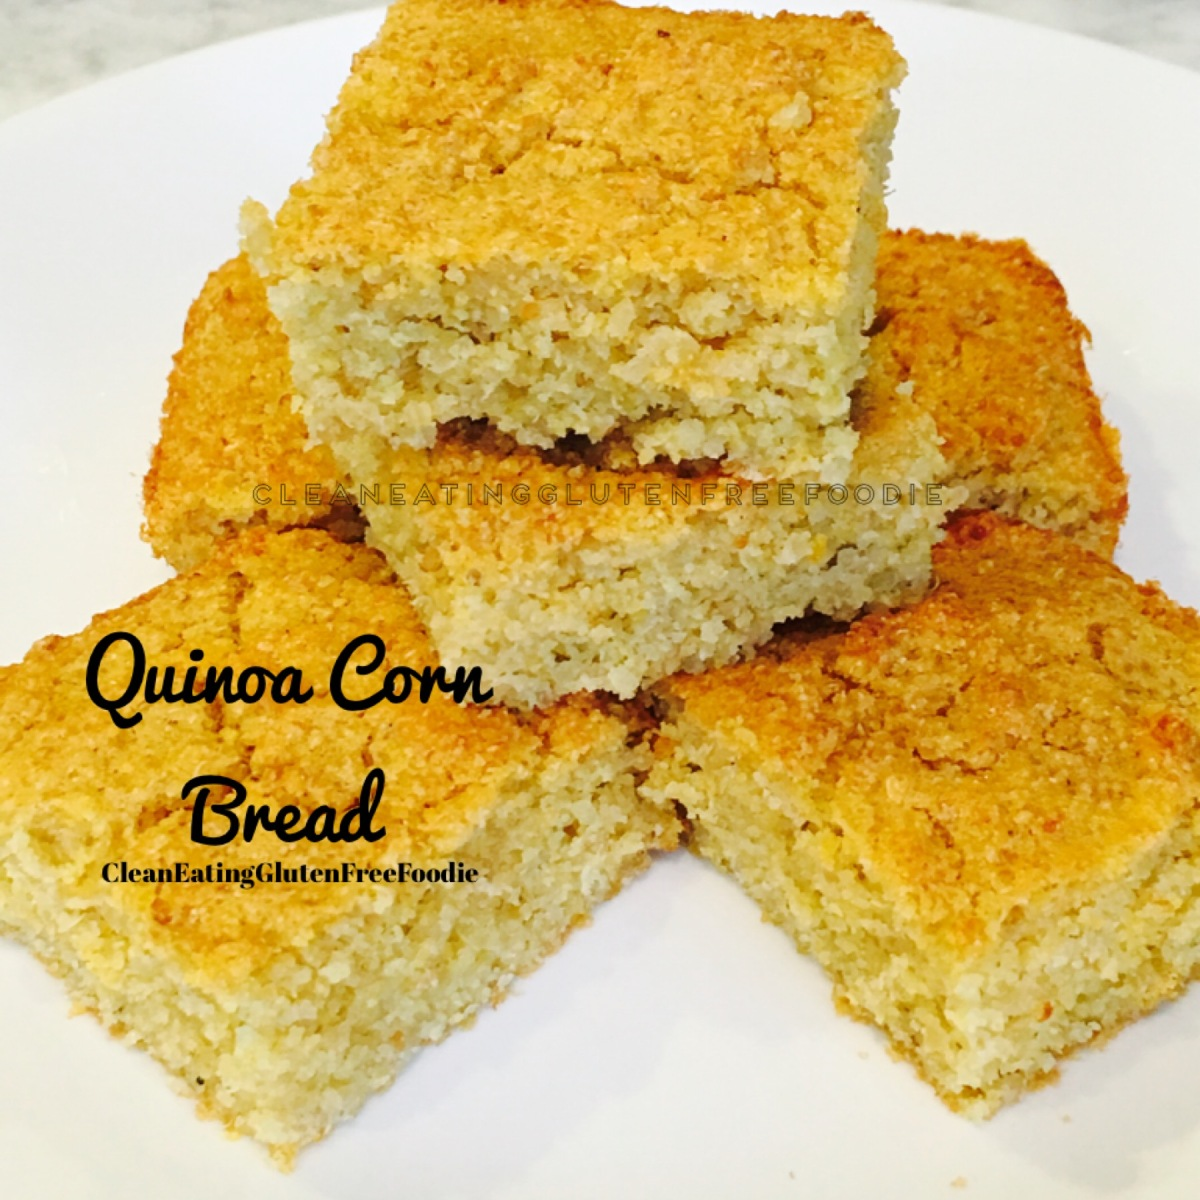 Quinoa Corn Bread